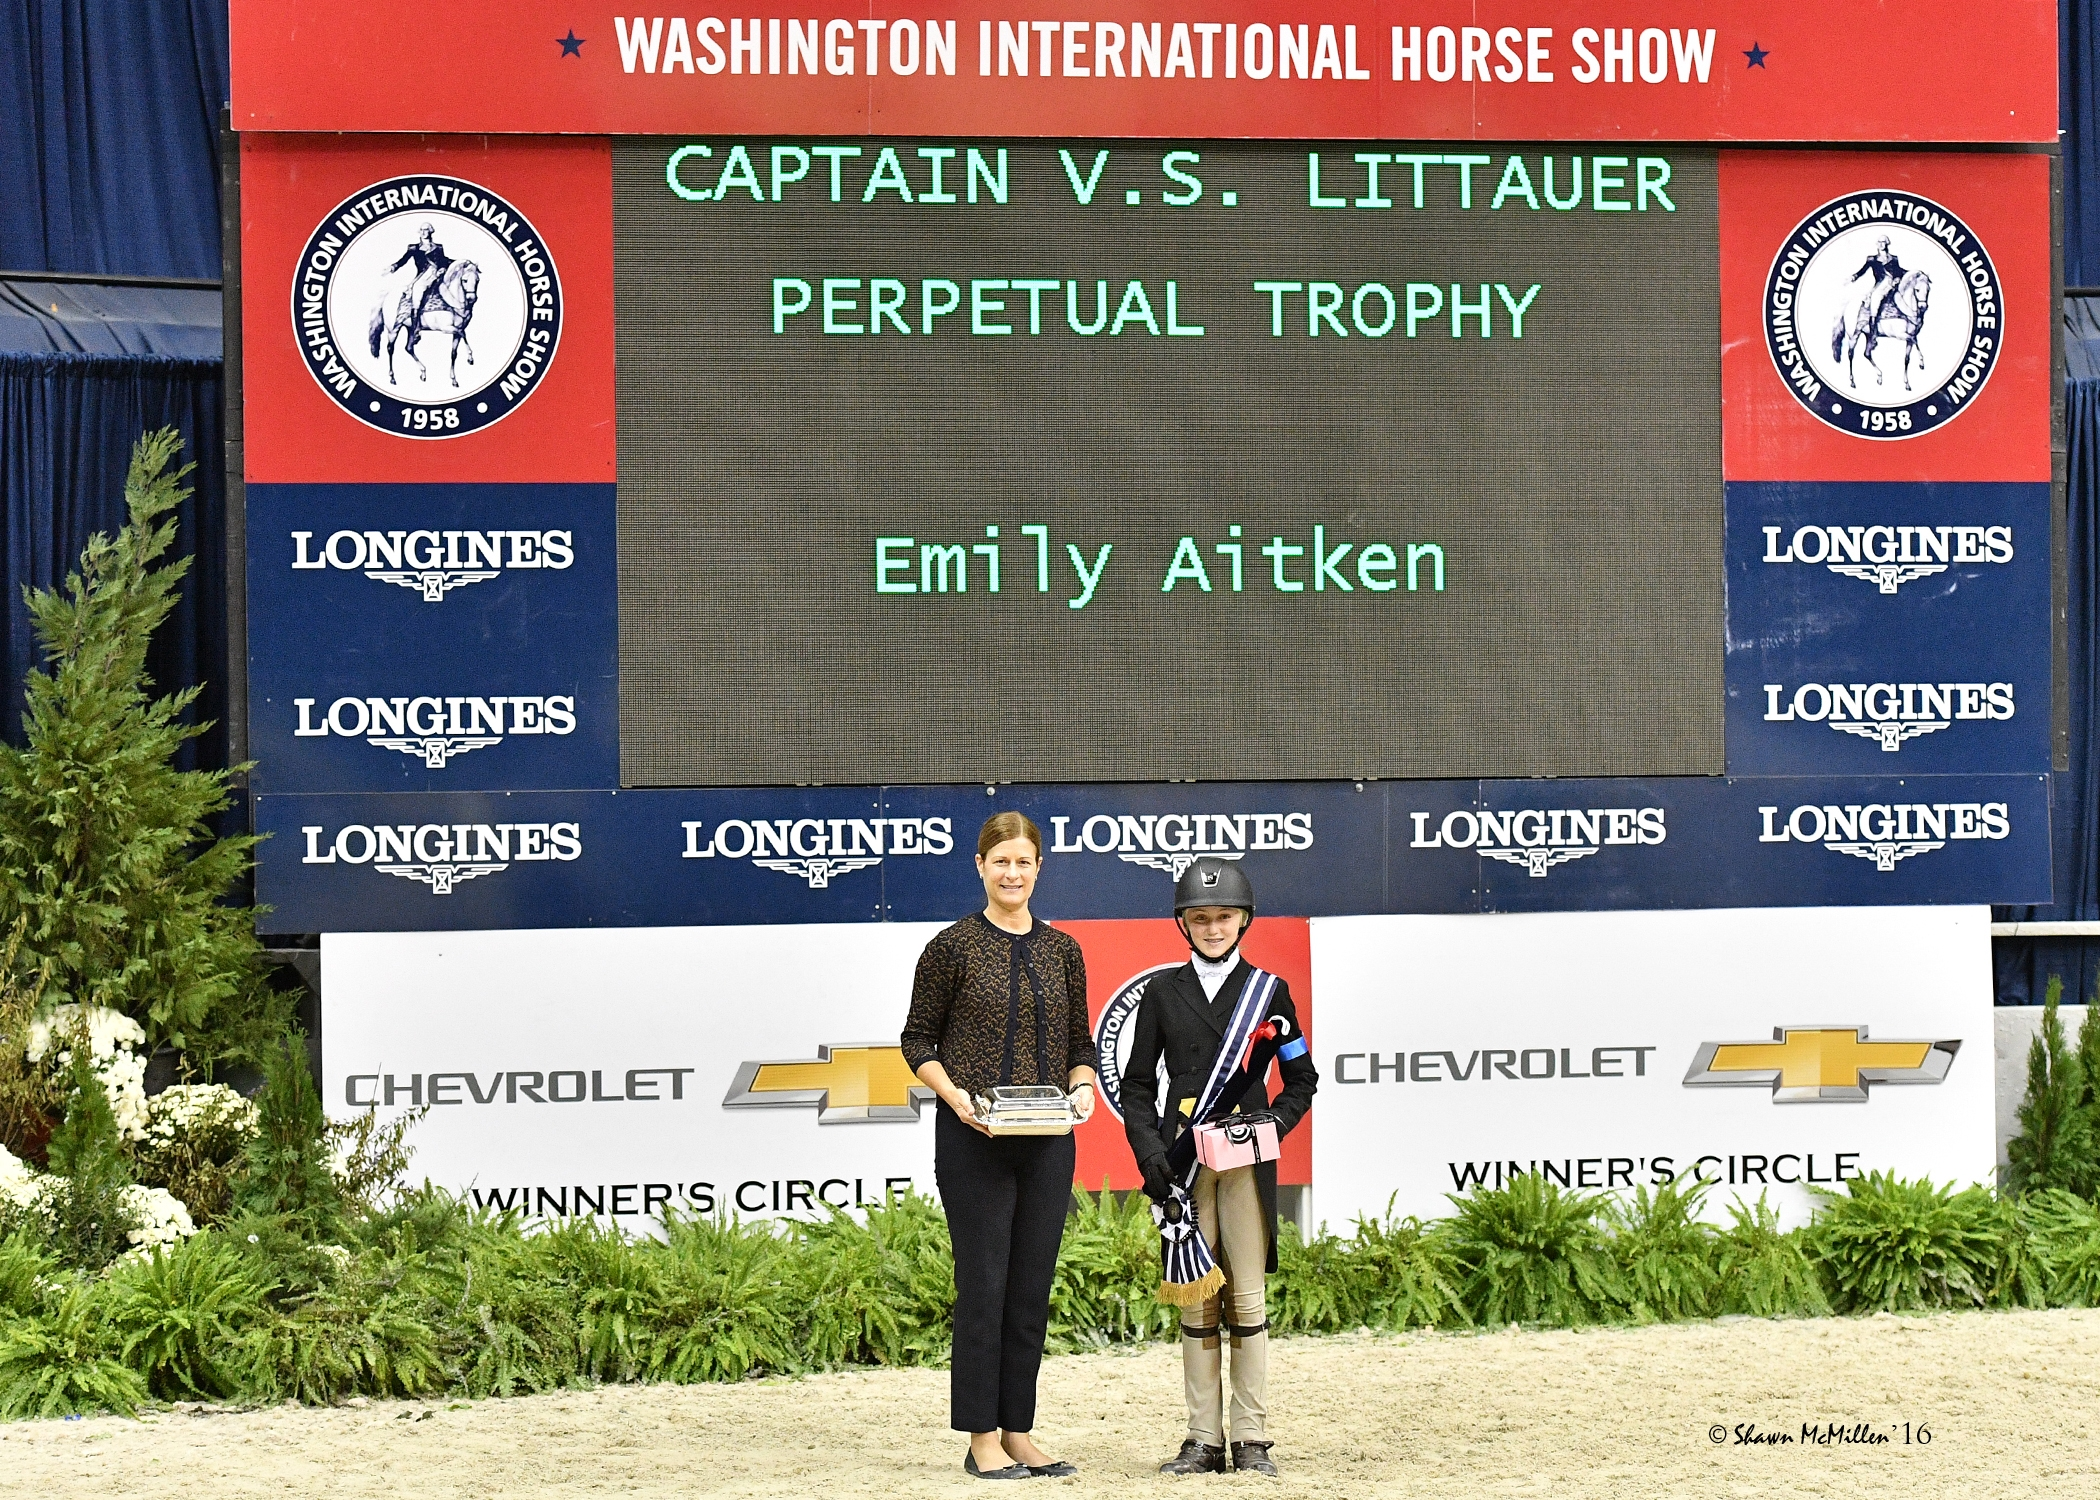 Emily Aitken in her presentation for Best Child Rider on a Pony with WIHS Executive Director Bridget Love Meehan. <br><b>Photo by <a href='http://www.shawnmcmillen.com/' target='_blank'>Shawn McMillen Photography</a></b>